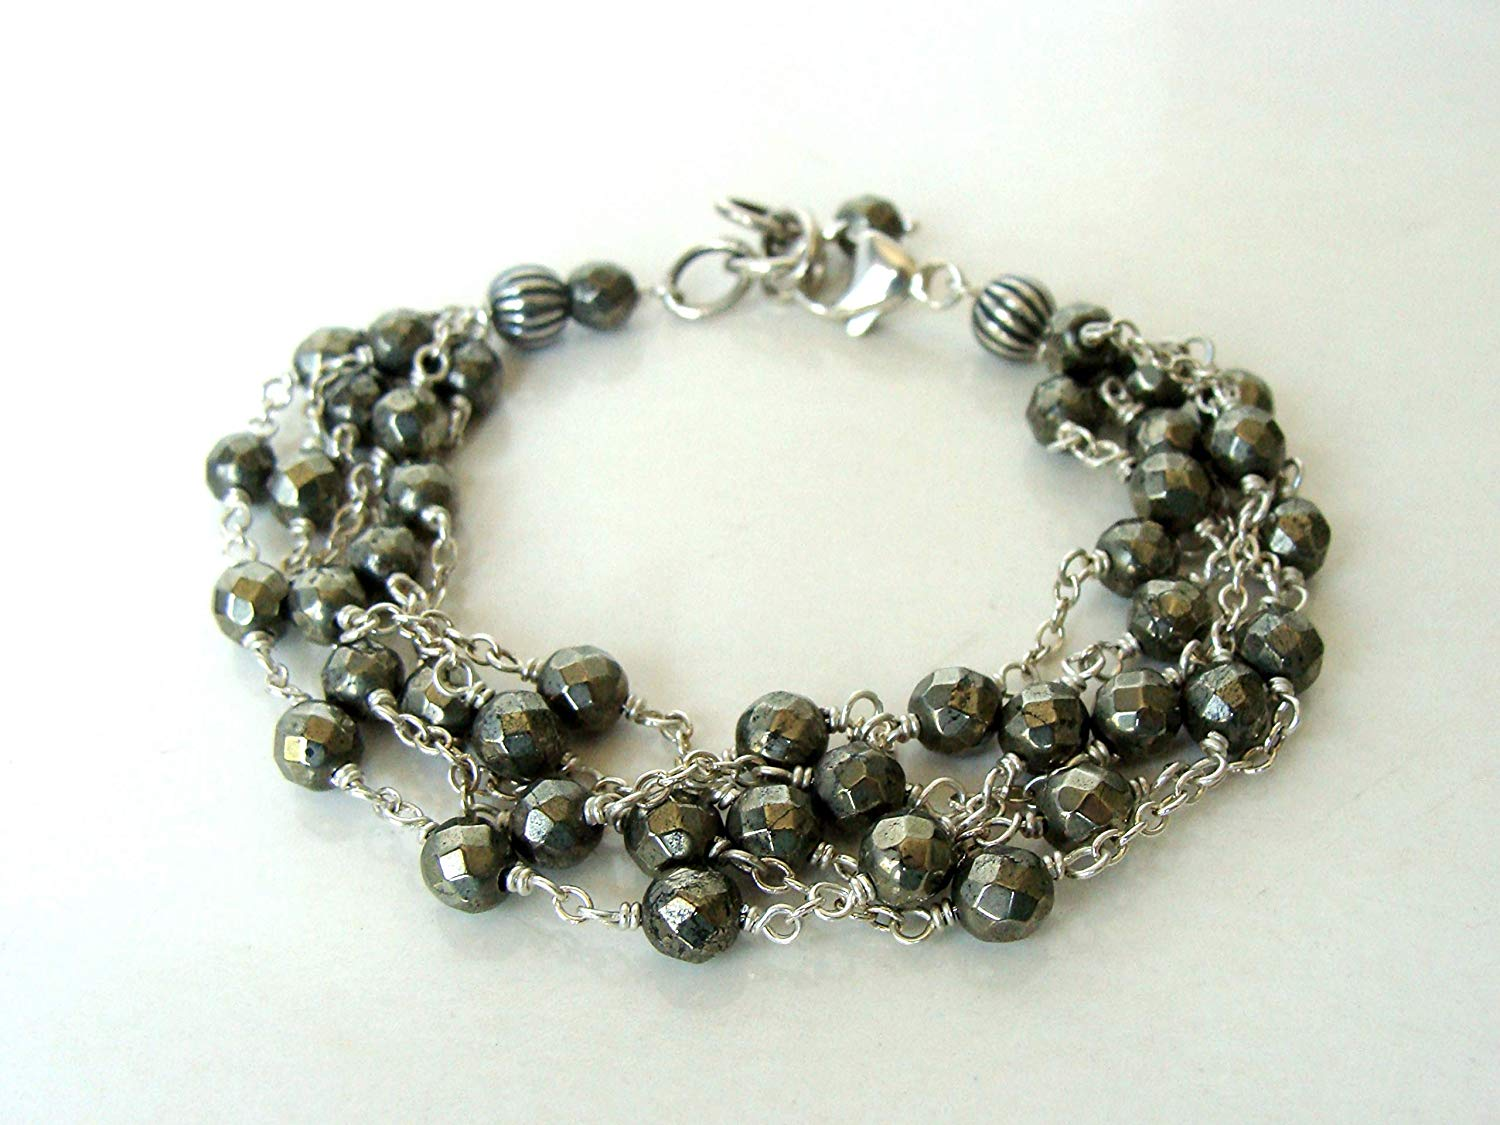 Multistrand pyrite sterling silver bracelet, gorgeous statement piece for everyday, adjustable 7-7.75 inches, Let Loose Jewelry handmade